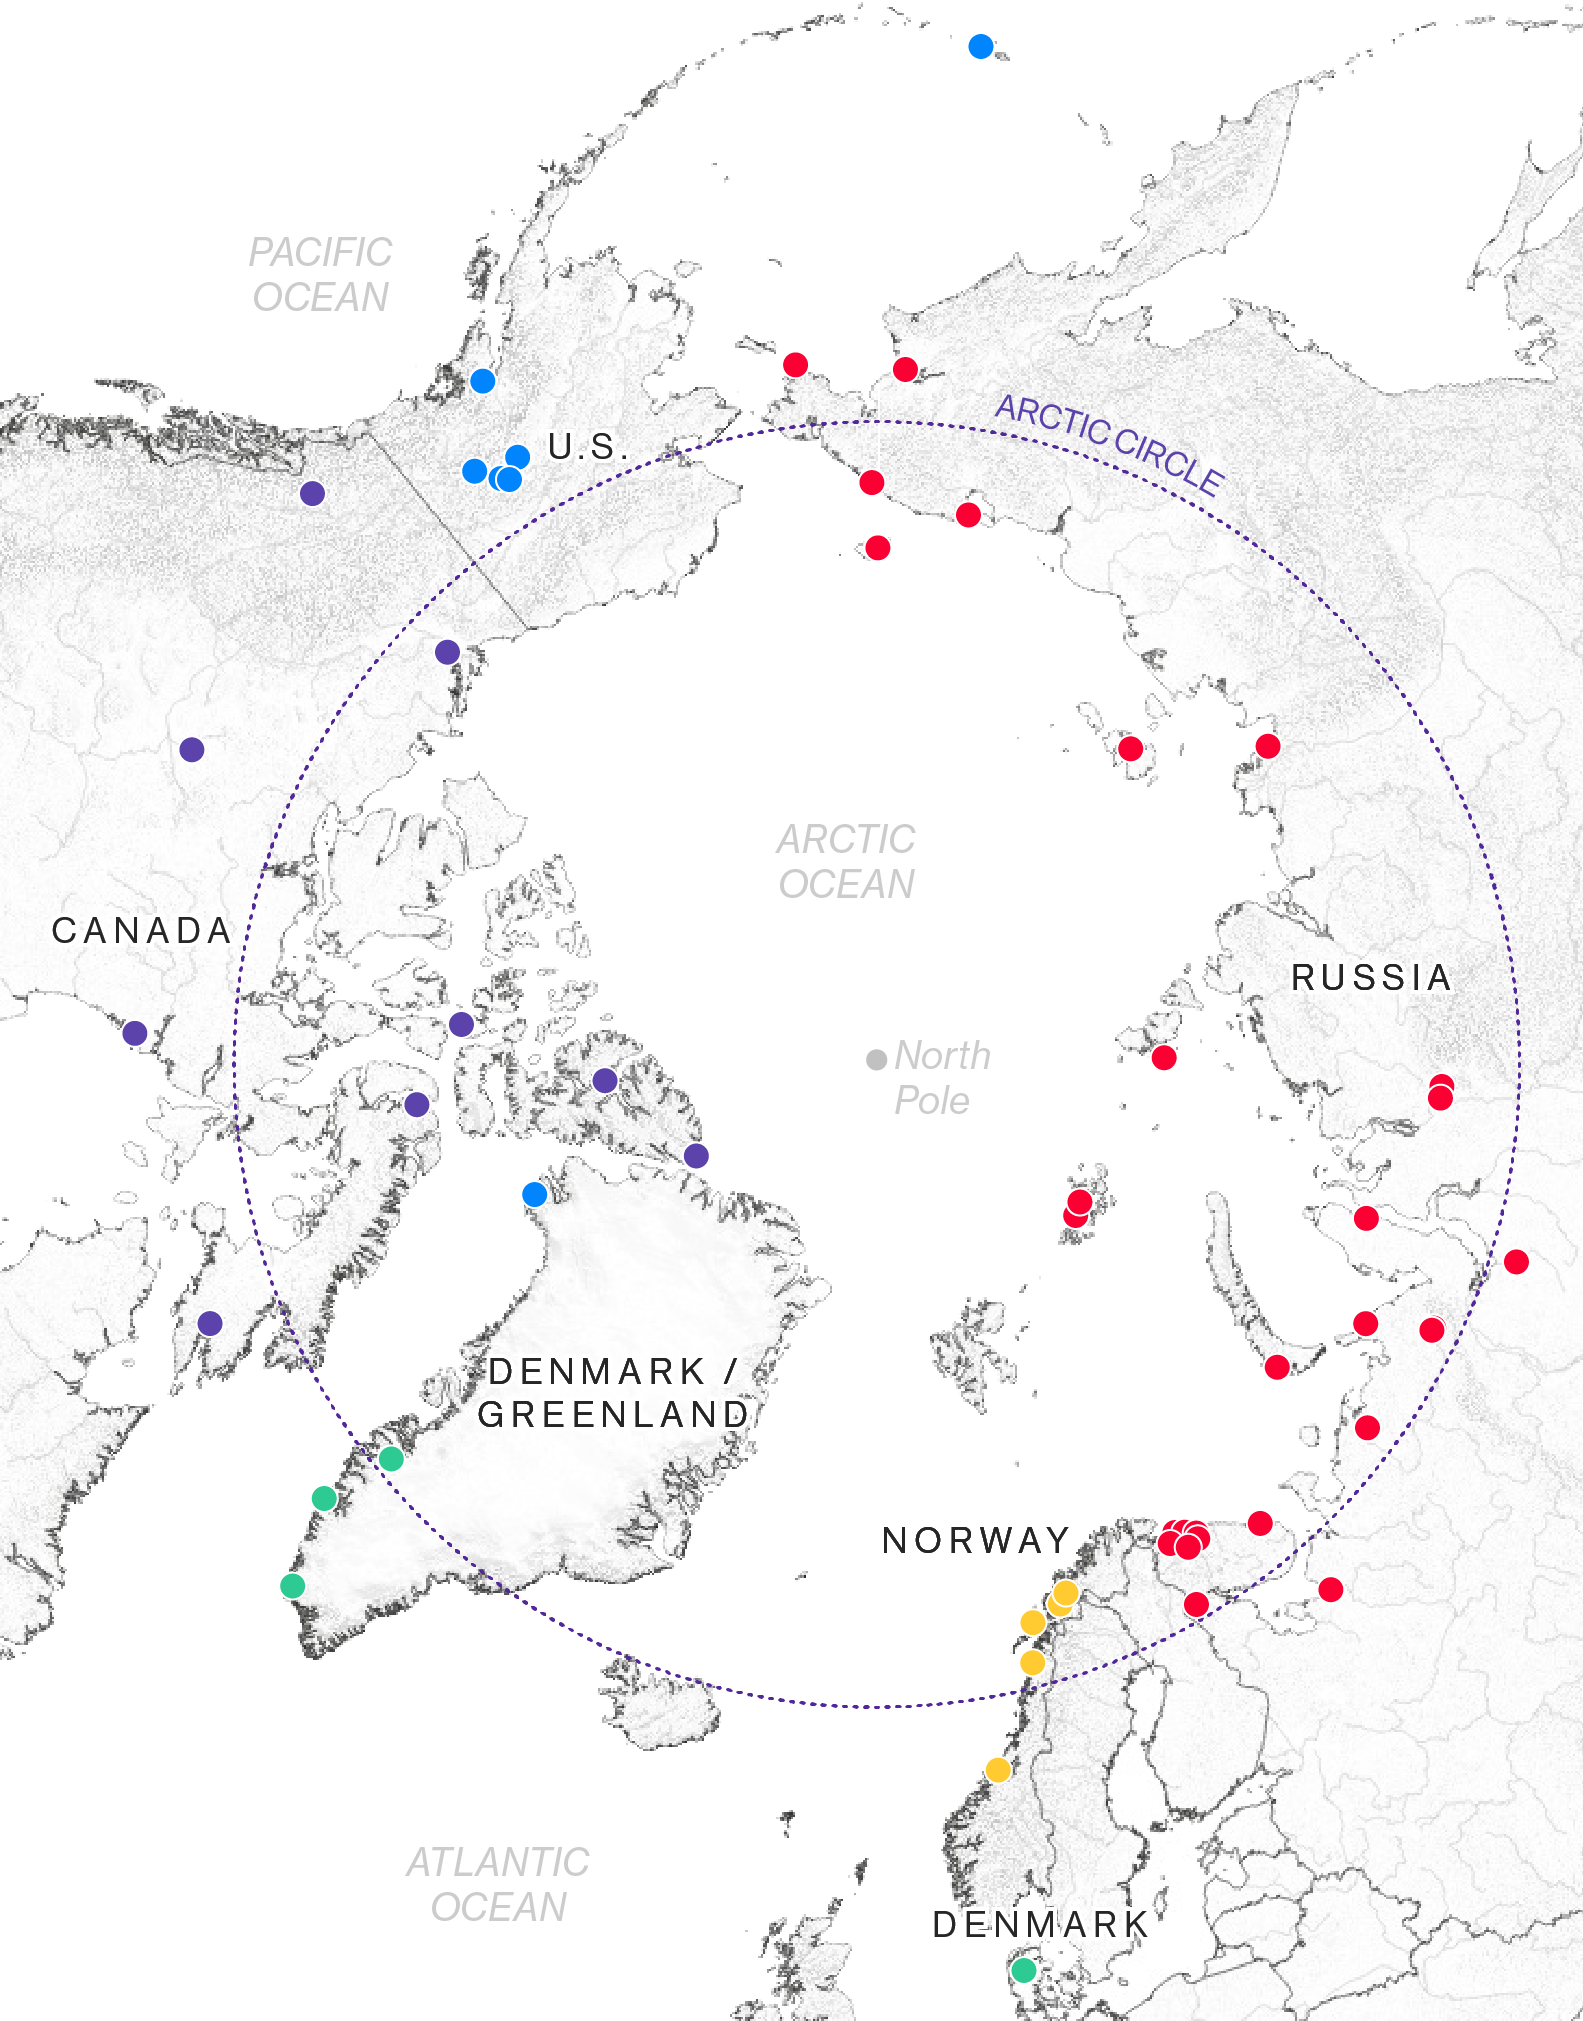 The Political Arctic - How a Melting Arctic Changes Everything on map of the scandinavia, map of the us including the arctic region, map of the moon circle, map of the grand circle, map of alaska, map of the prime meridian, map of the red sea, map of tropic of cancer, map of canada, map of mexico, map of tropic of capricorn, map of africa, antarctic circle, map of the arctic ocean, map of antarctica, map of north america, map of norway, map of the indian ocean, map of central america, map of europe,